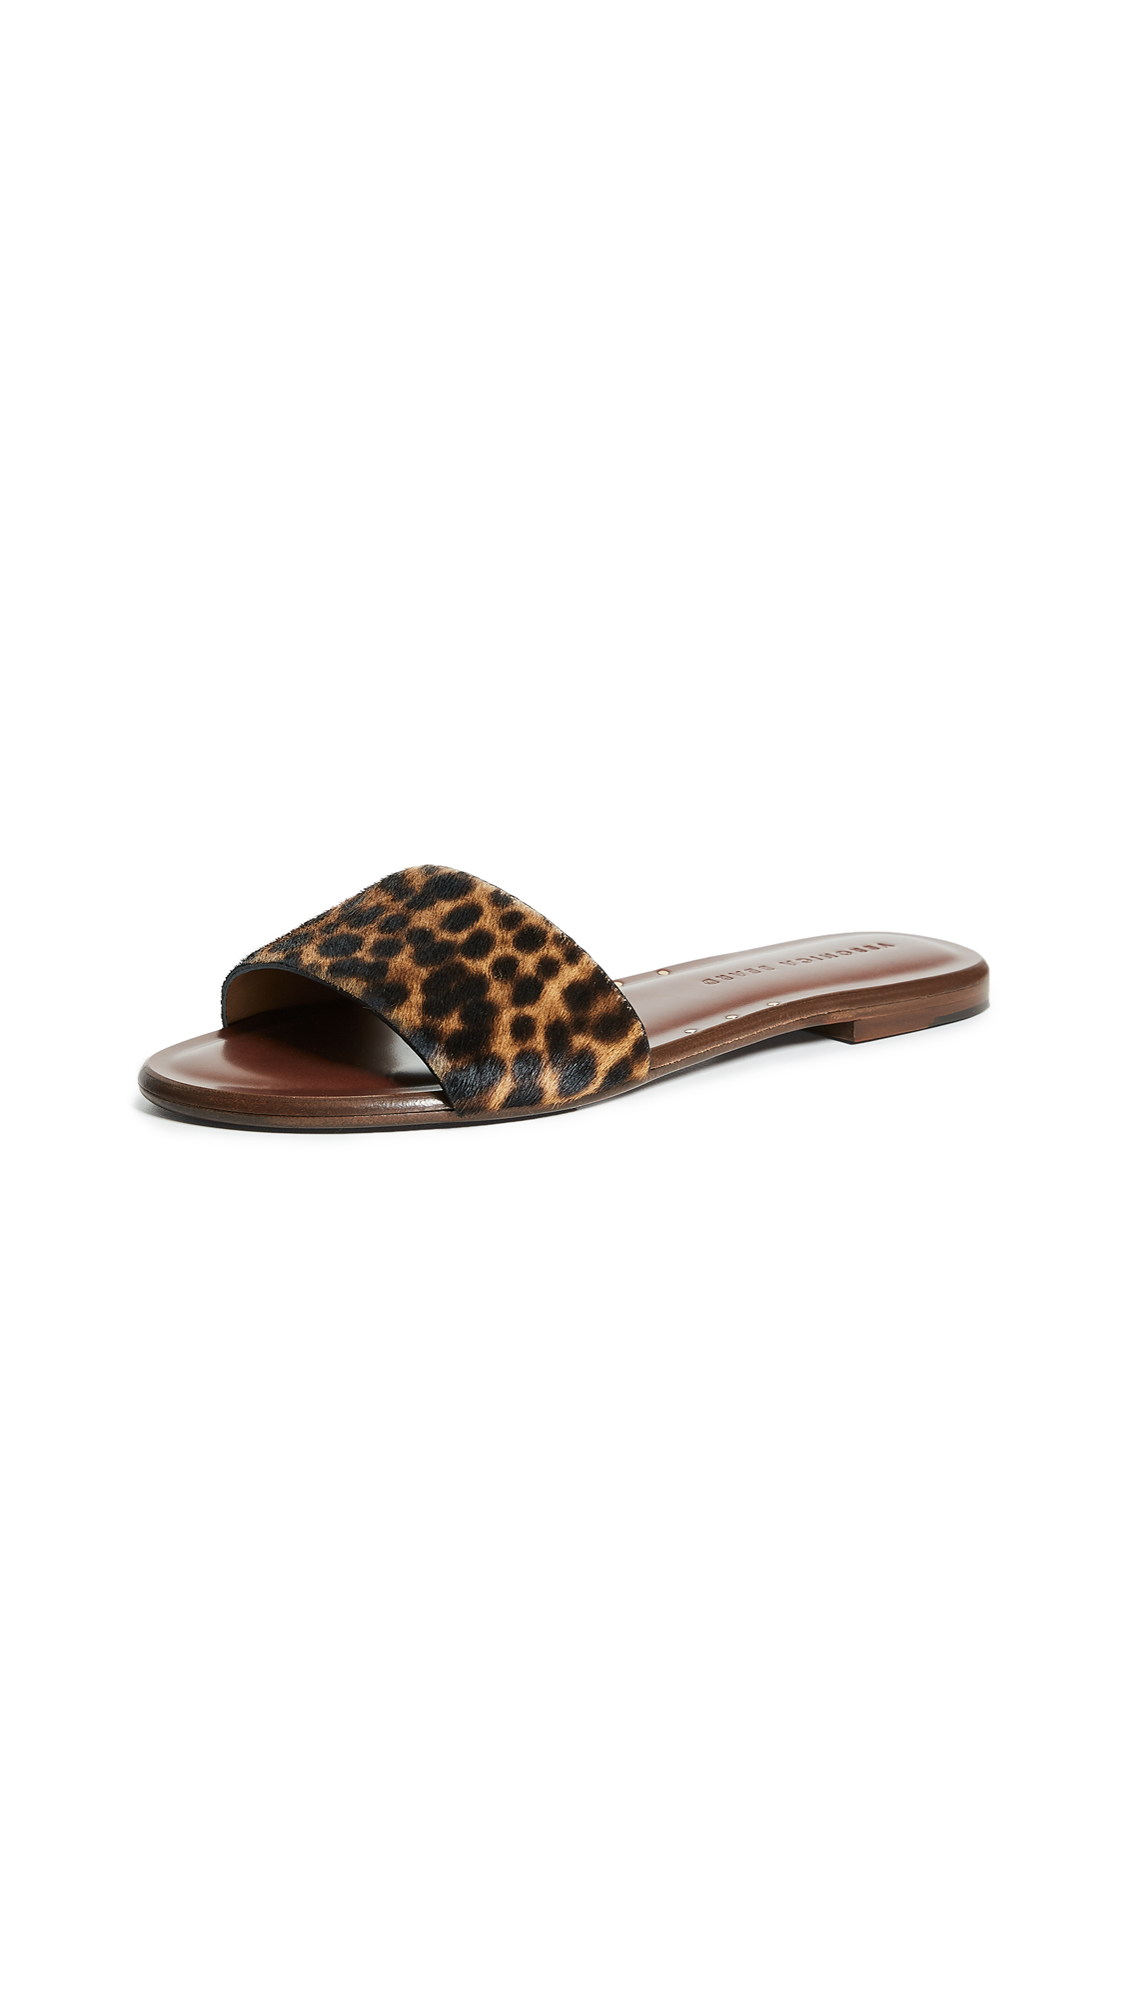 FLOR LEOPARD HAIRCALF